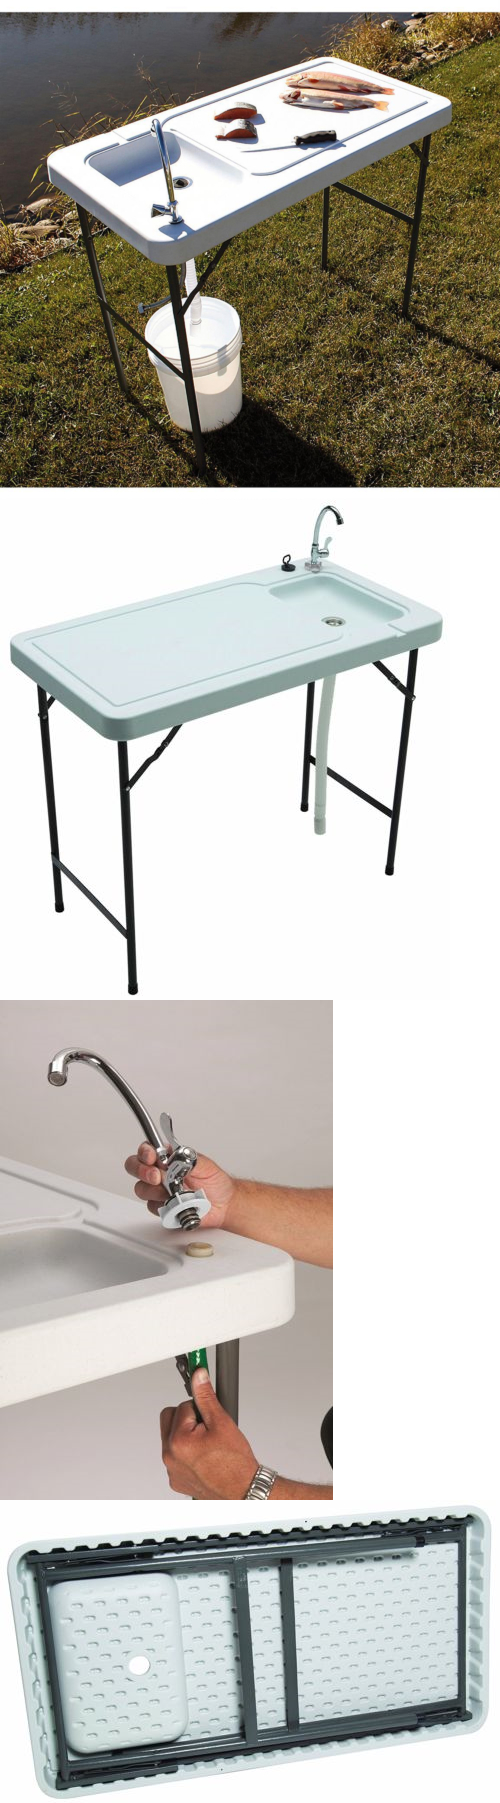 Fillet Tables and Cutting Boards 161823: Portable Sink Folding ...